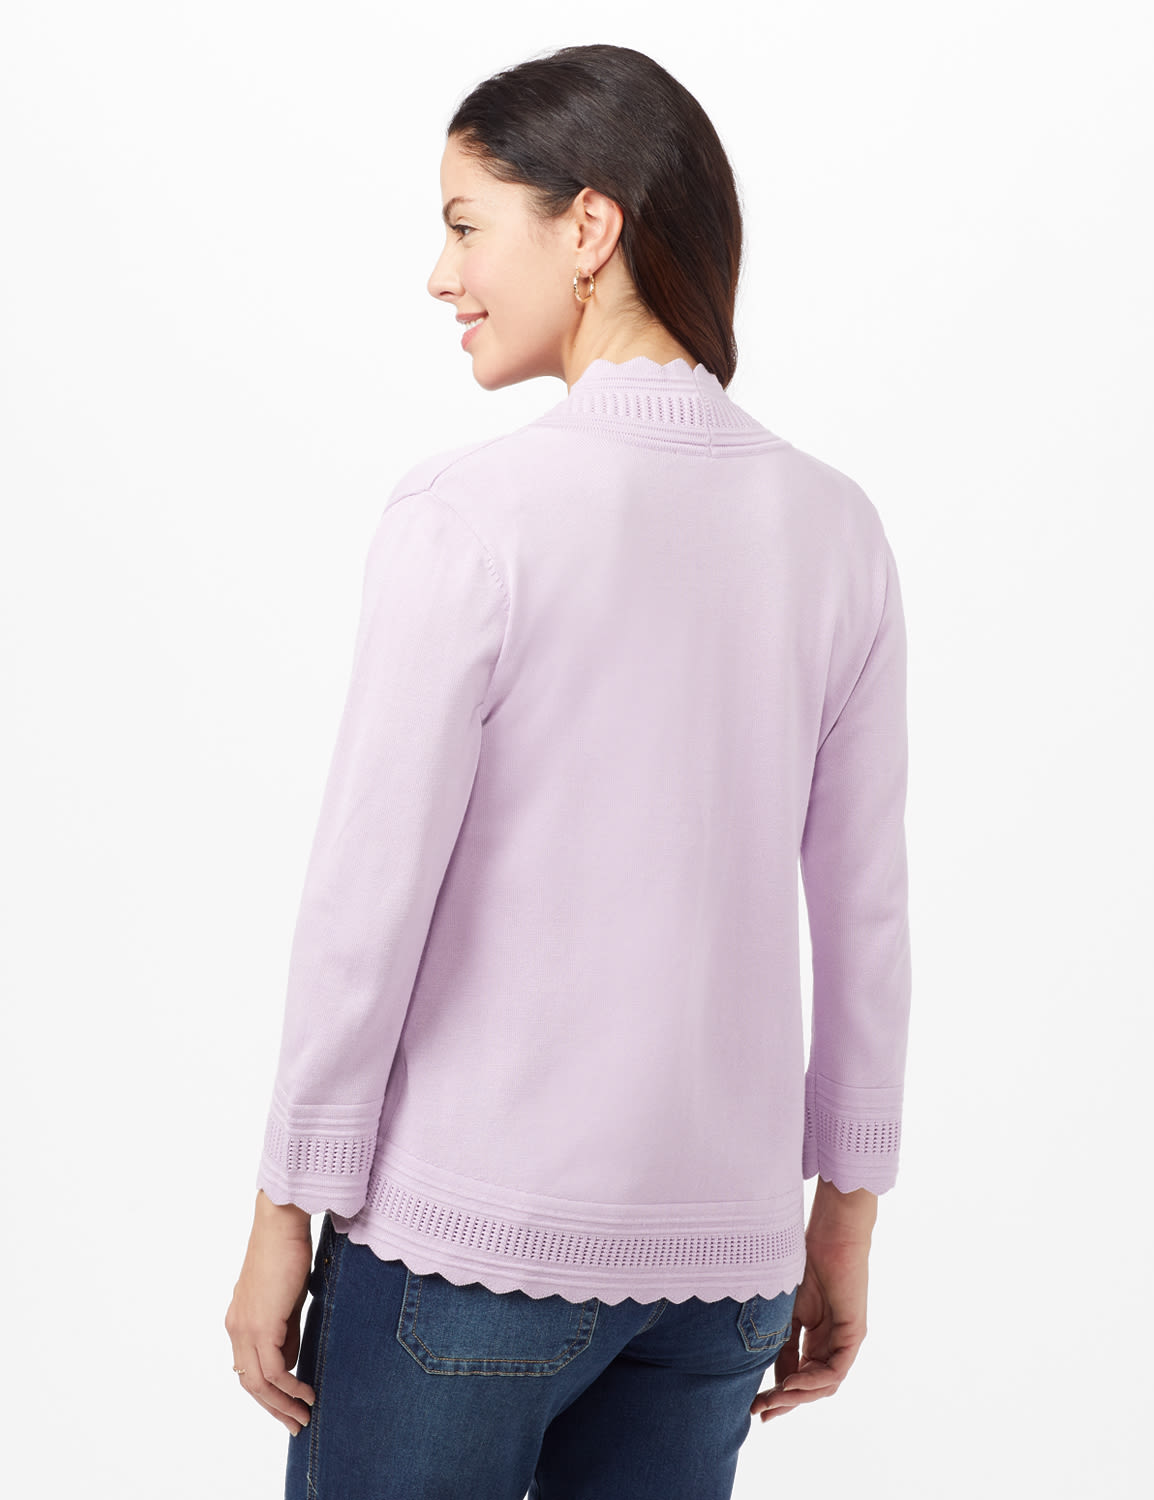 Scallop Trim Cardigan - Spring Orchid - Back